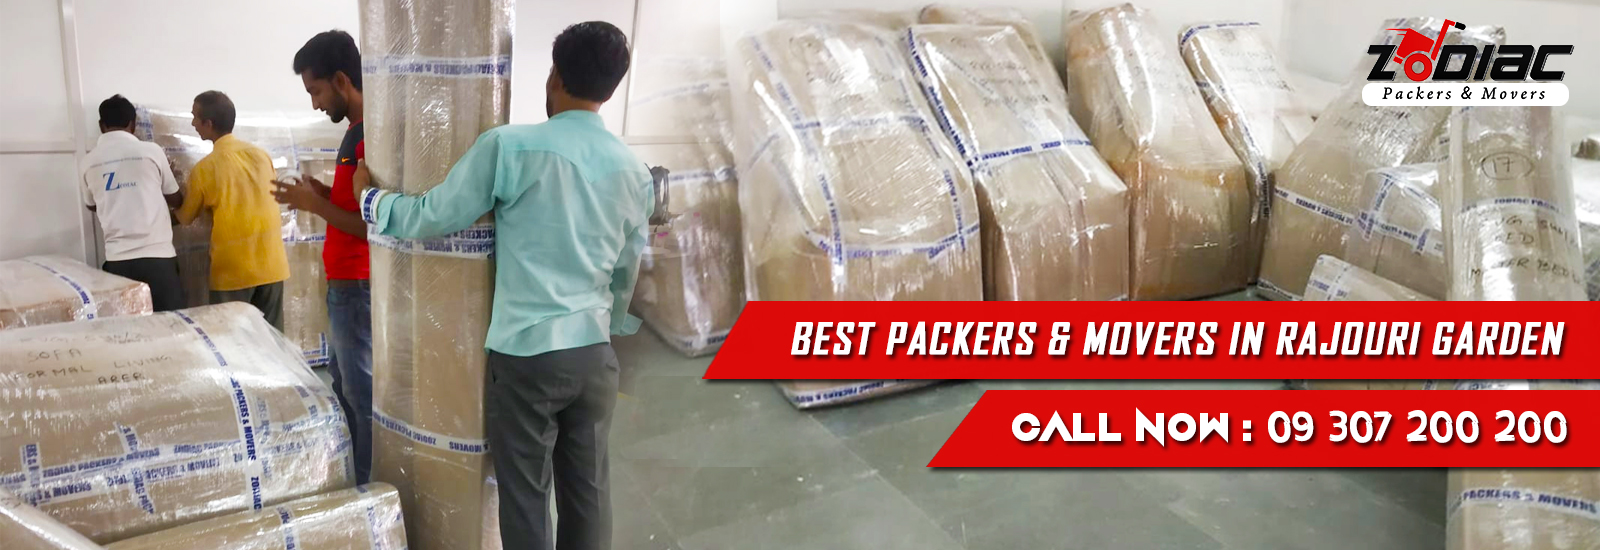 Packers and Movers in Rajouri Garden